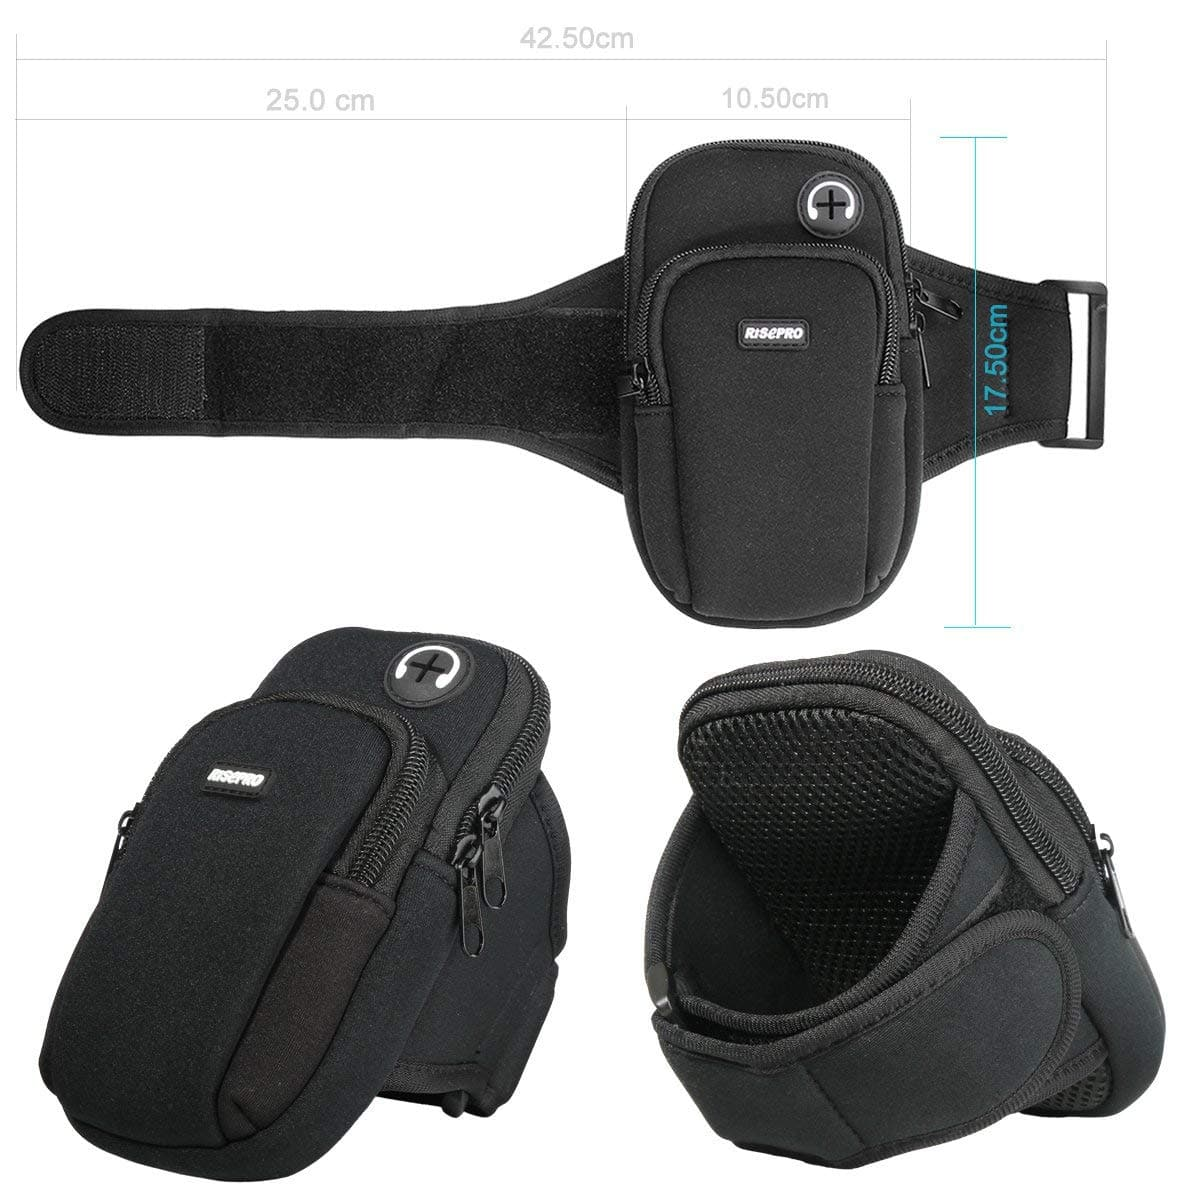 Neoprene Smartphone Armband Workout Case $3.48 AC + FS (Prime)